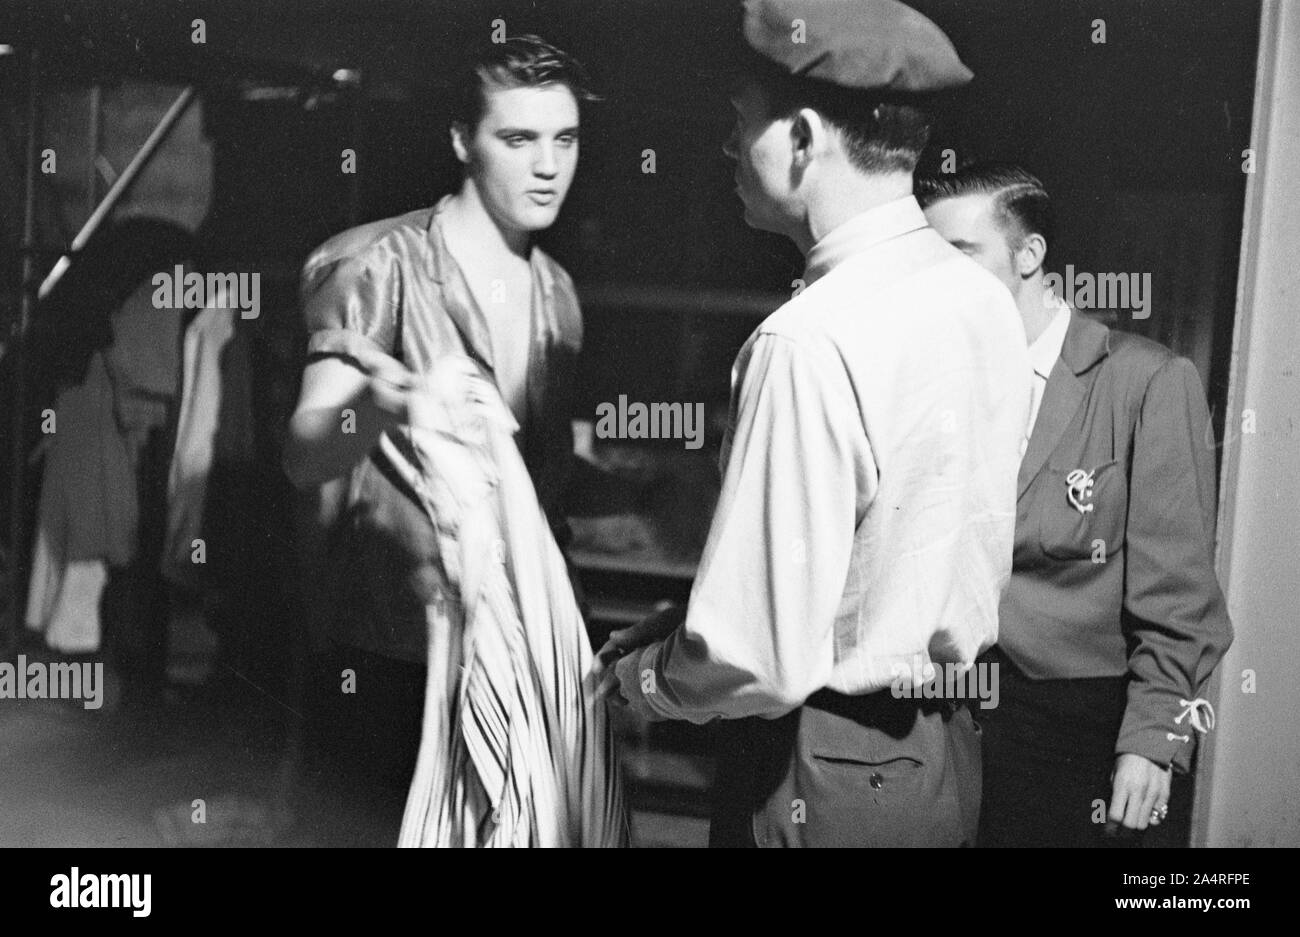 """Elvis Presley and his cousin Gene Smith, backstage at the University of Dayton Fieldhouse, May 27, 1956. Gene Smith was part of Presley's entourage, and is considered a member of the """"Memphis Mafia"""". Stock Photo"""